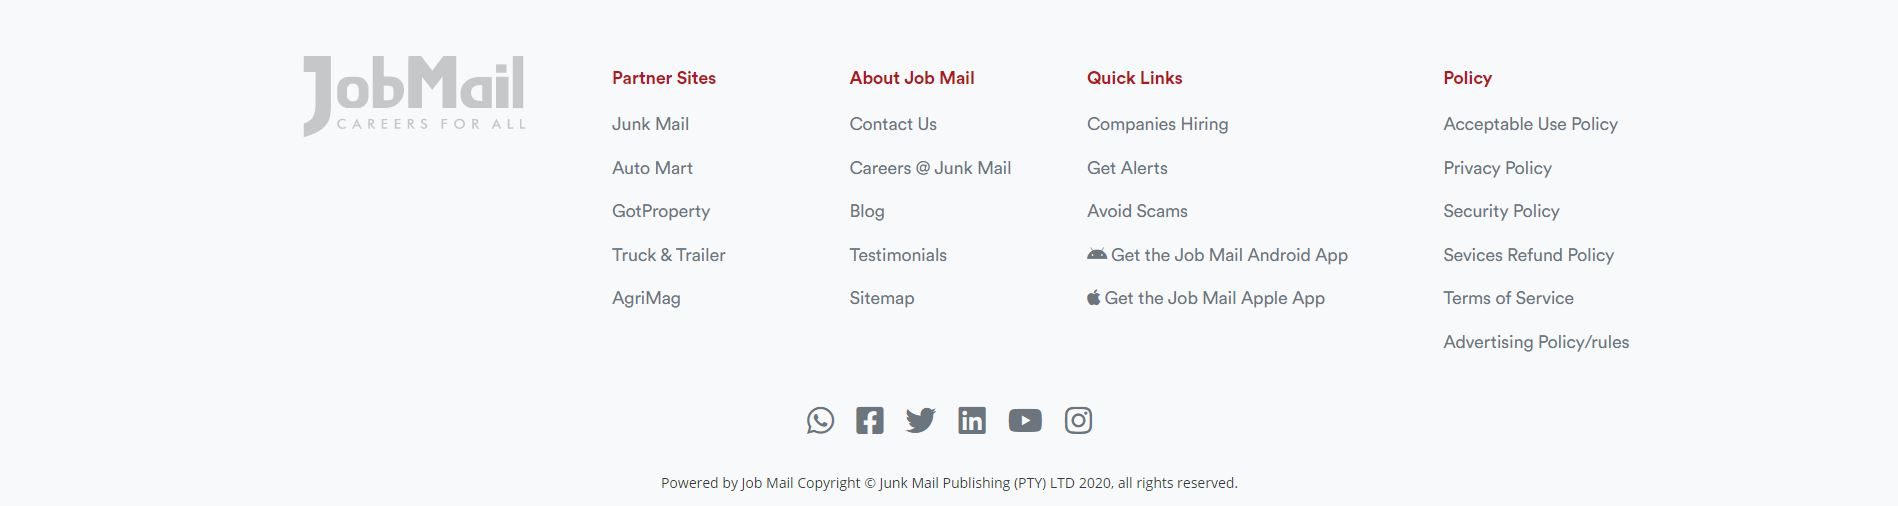 Job Mail Website Navigation